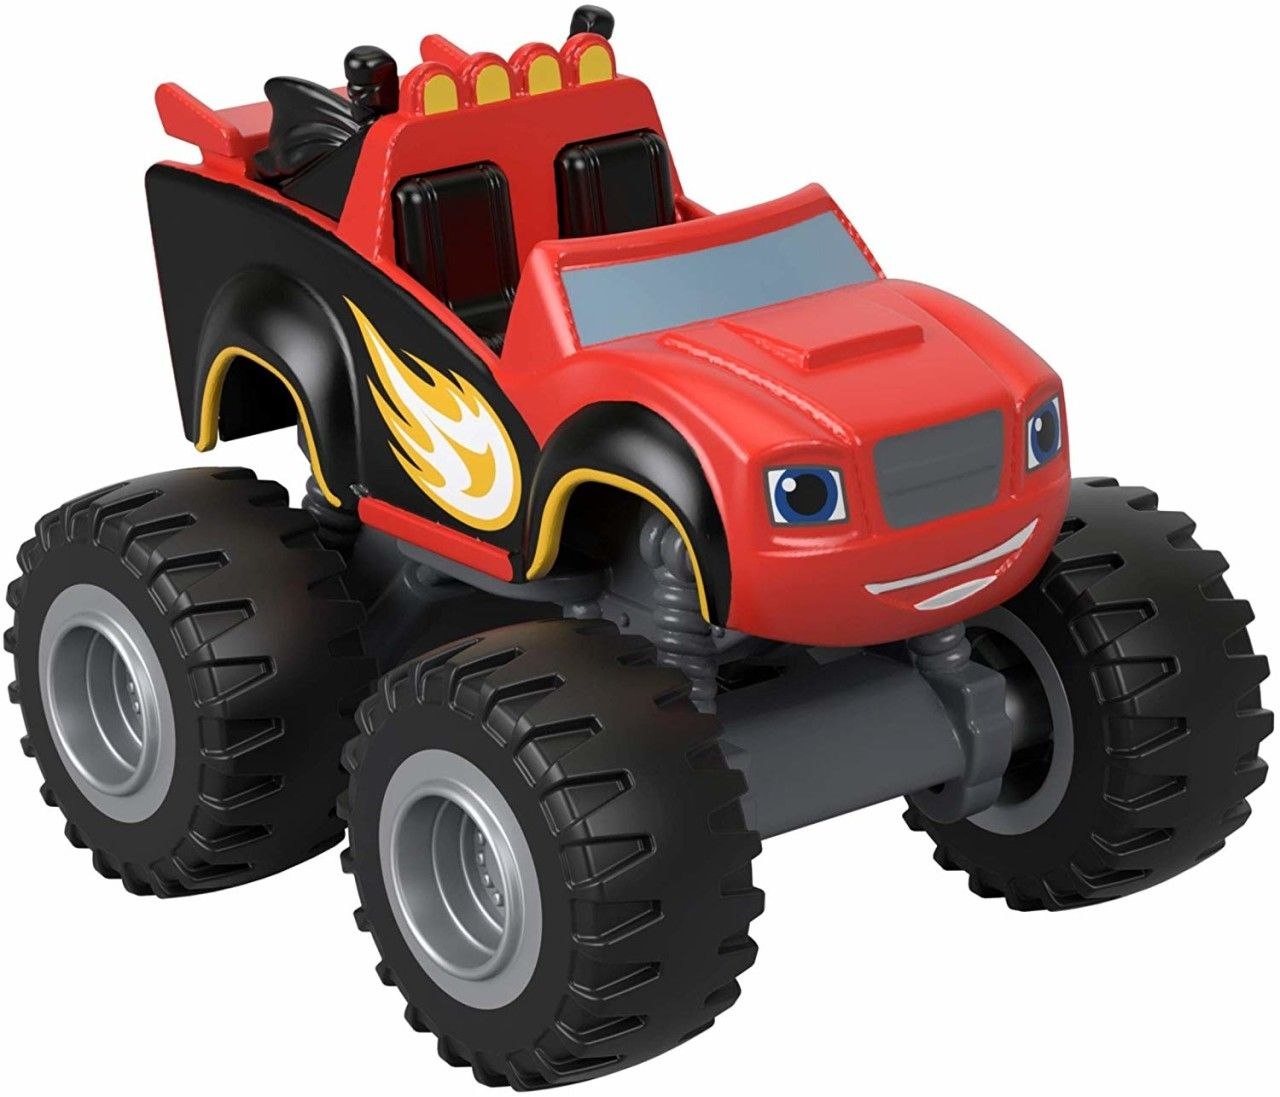 Nickelodeon Blaze & The Monster Machines Ninja Blaze Only ...